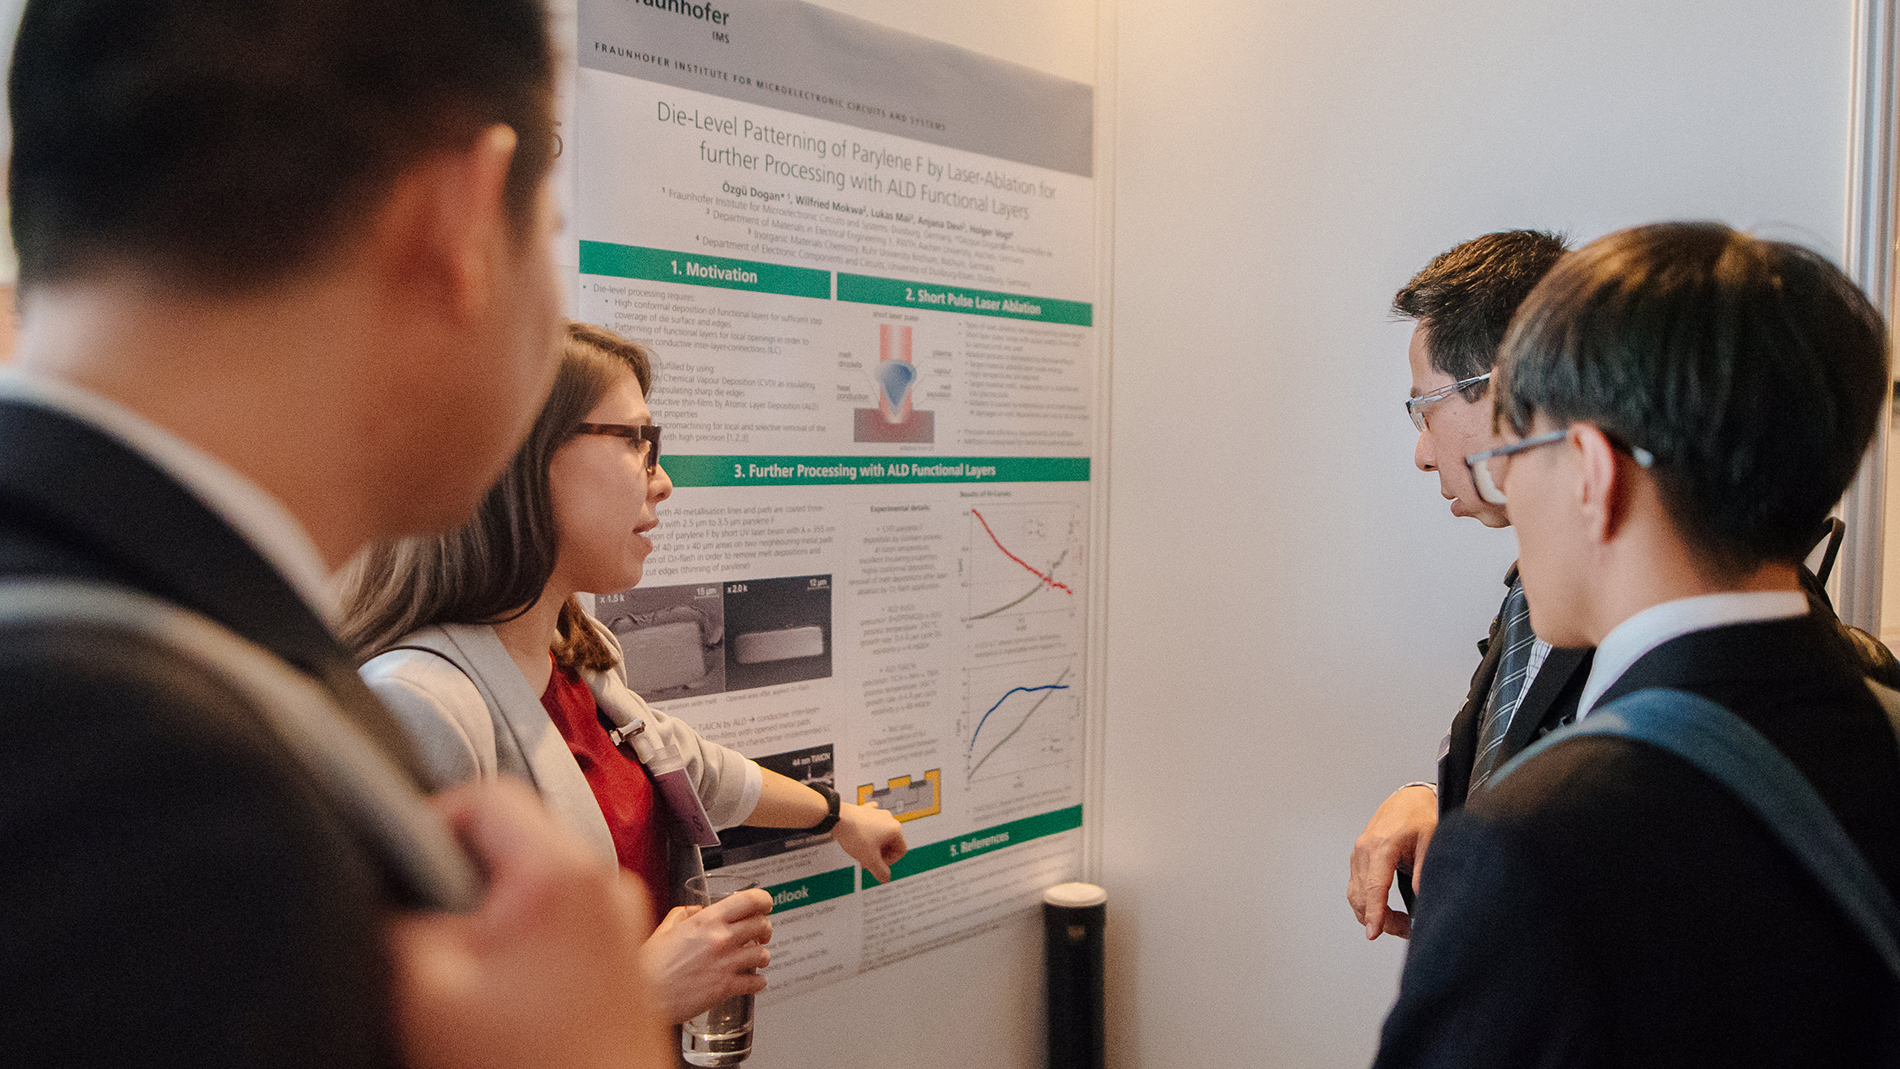 SSI_Conference_Dresden_20180411_095